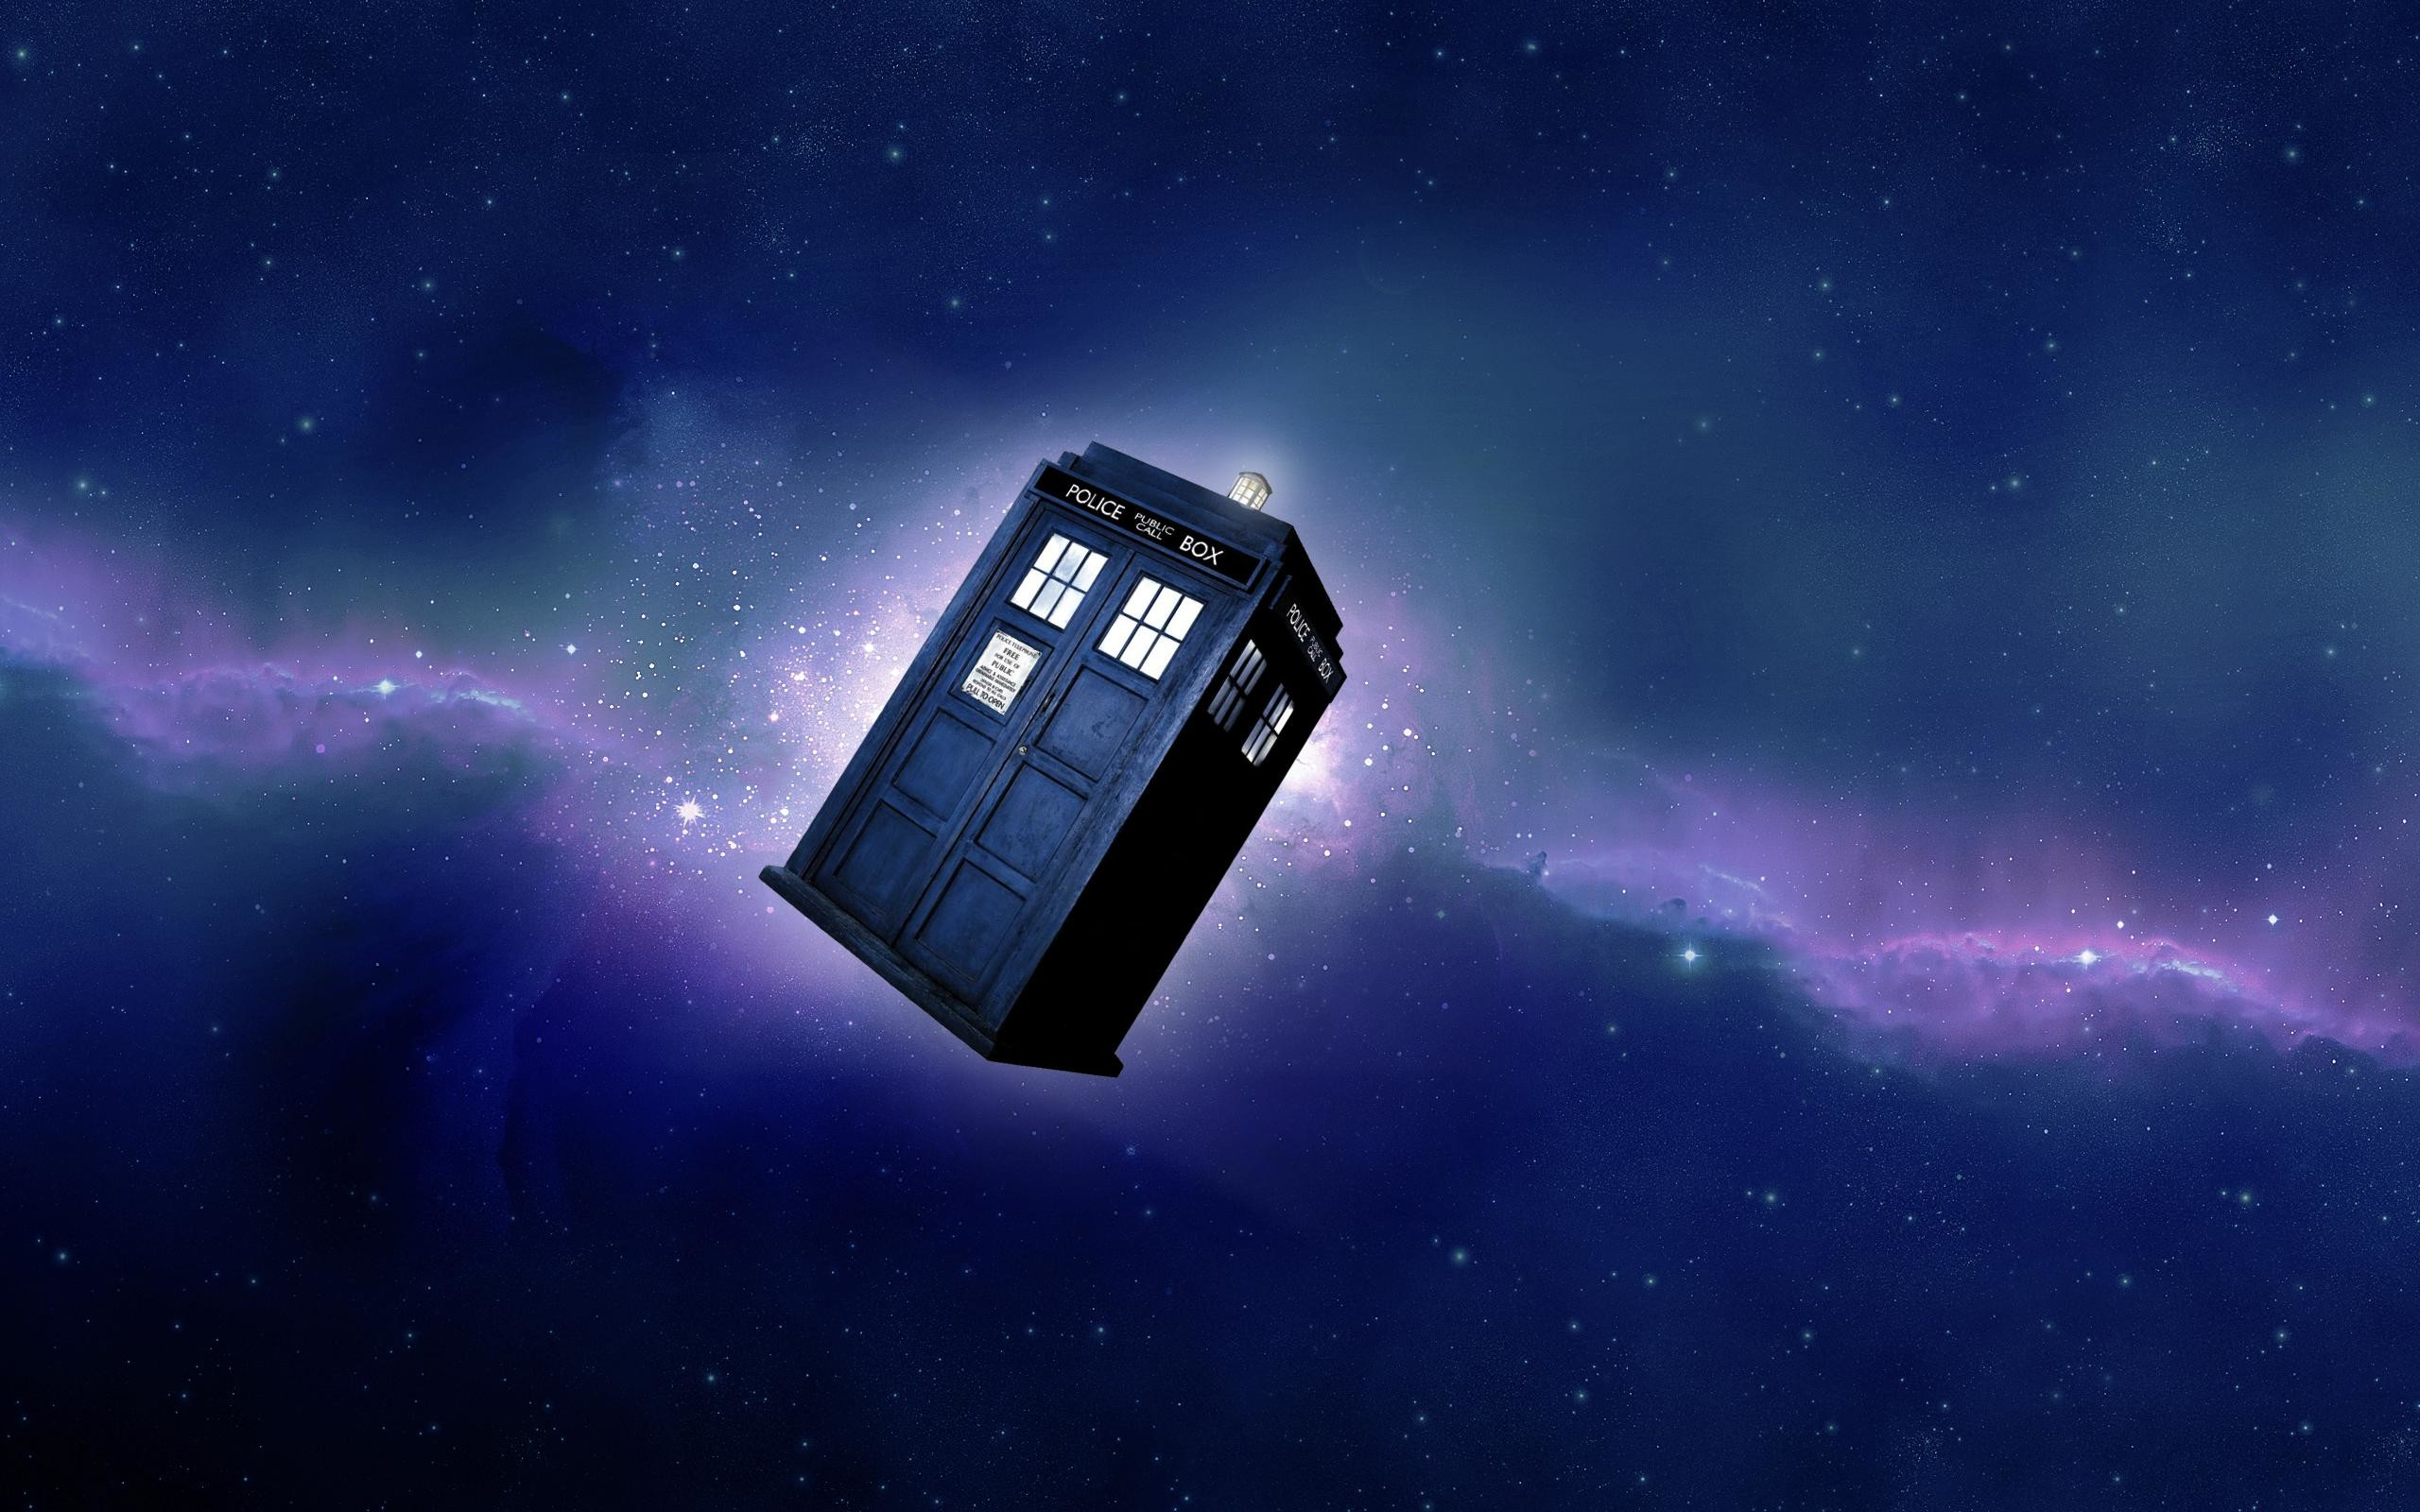 2560x1600 best ideas about Doctor who wallpaper on Pinterest Tardis